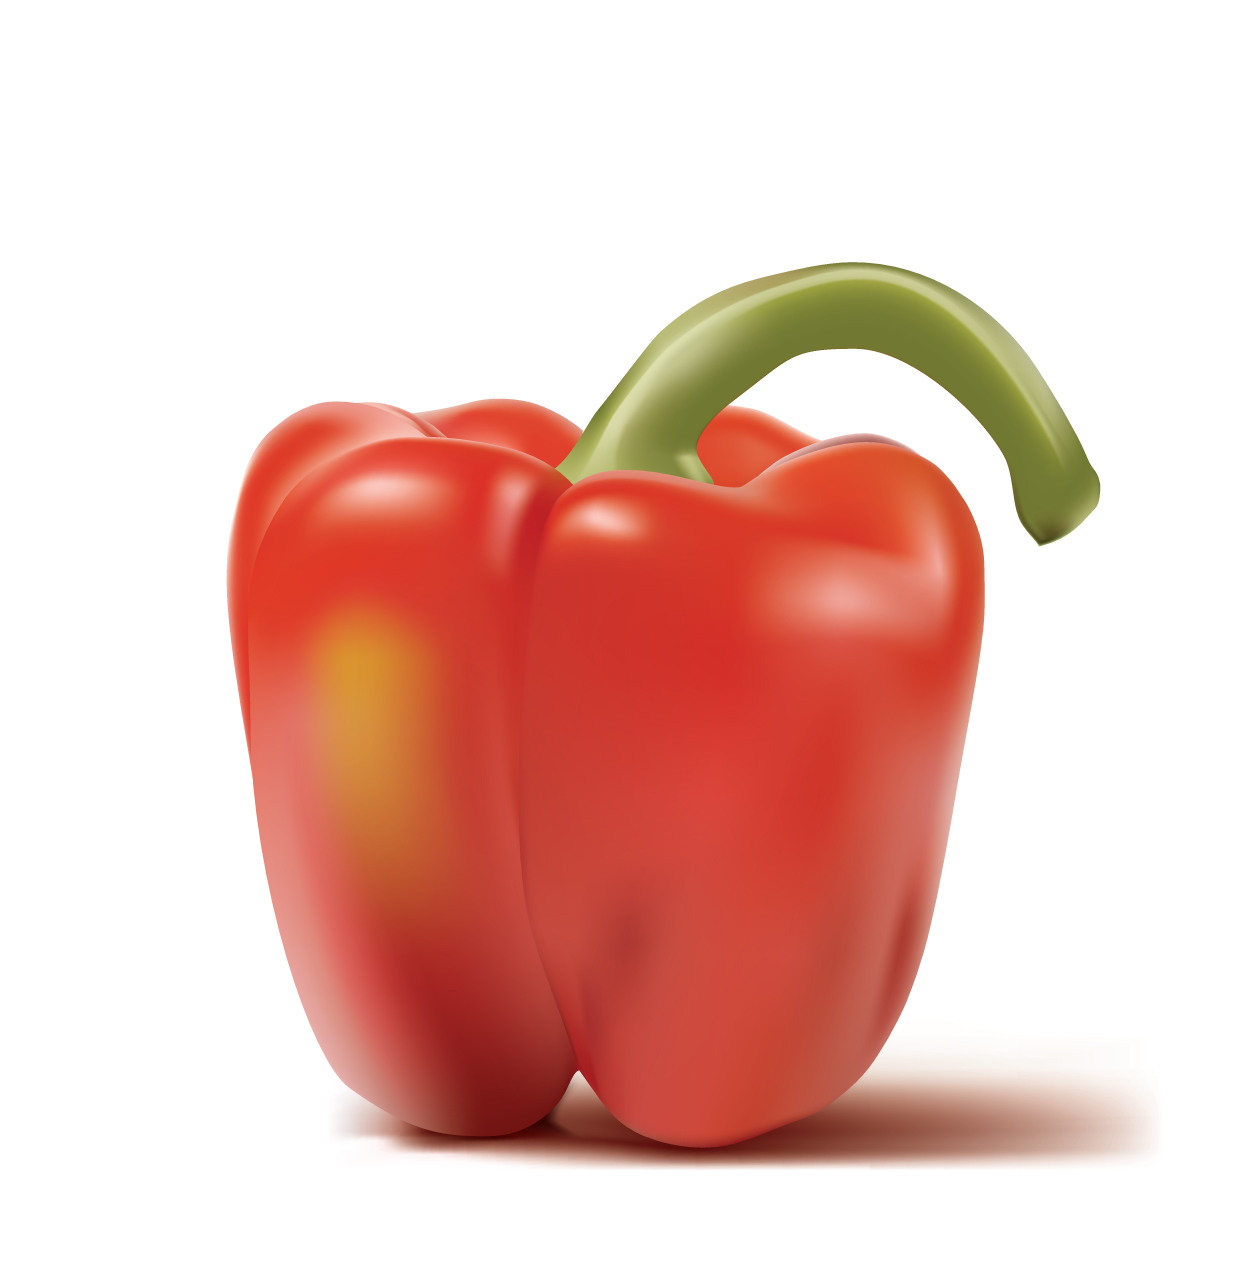 Hyper real red pepper